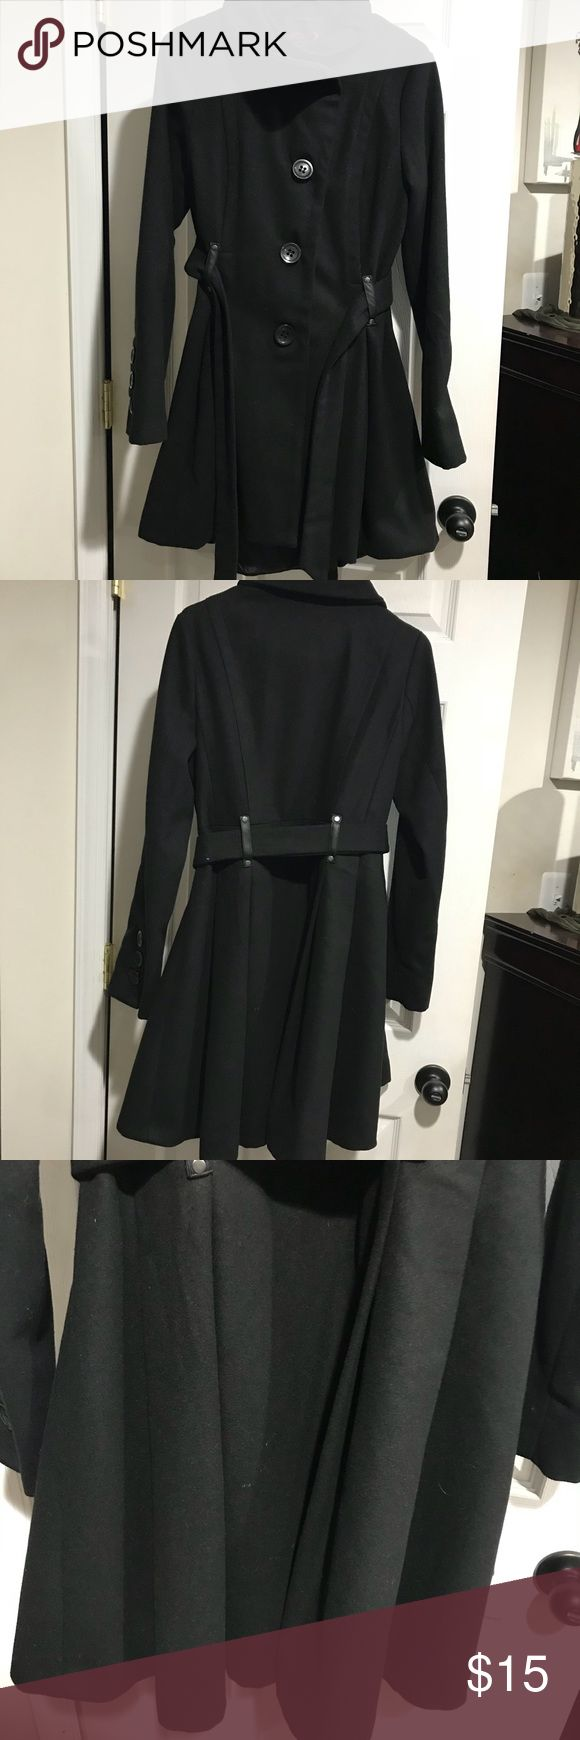 Black long pea coat with belt Black pea coat with large button accents, belt and pleats at bottom. This is a longer length coat. Size medium. Only worn once to a wedding. Longer length and pleats look great for a formal event in colder weather. Jackets & Coats Pea Coats